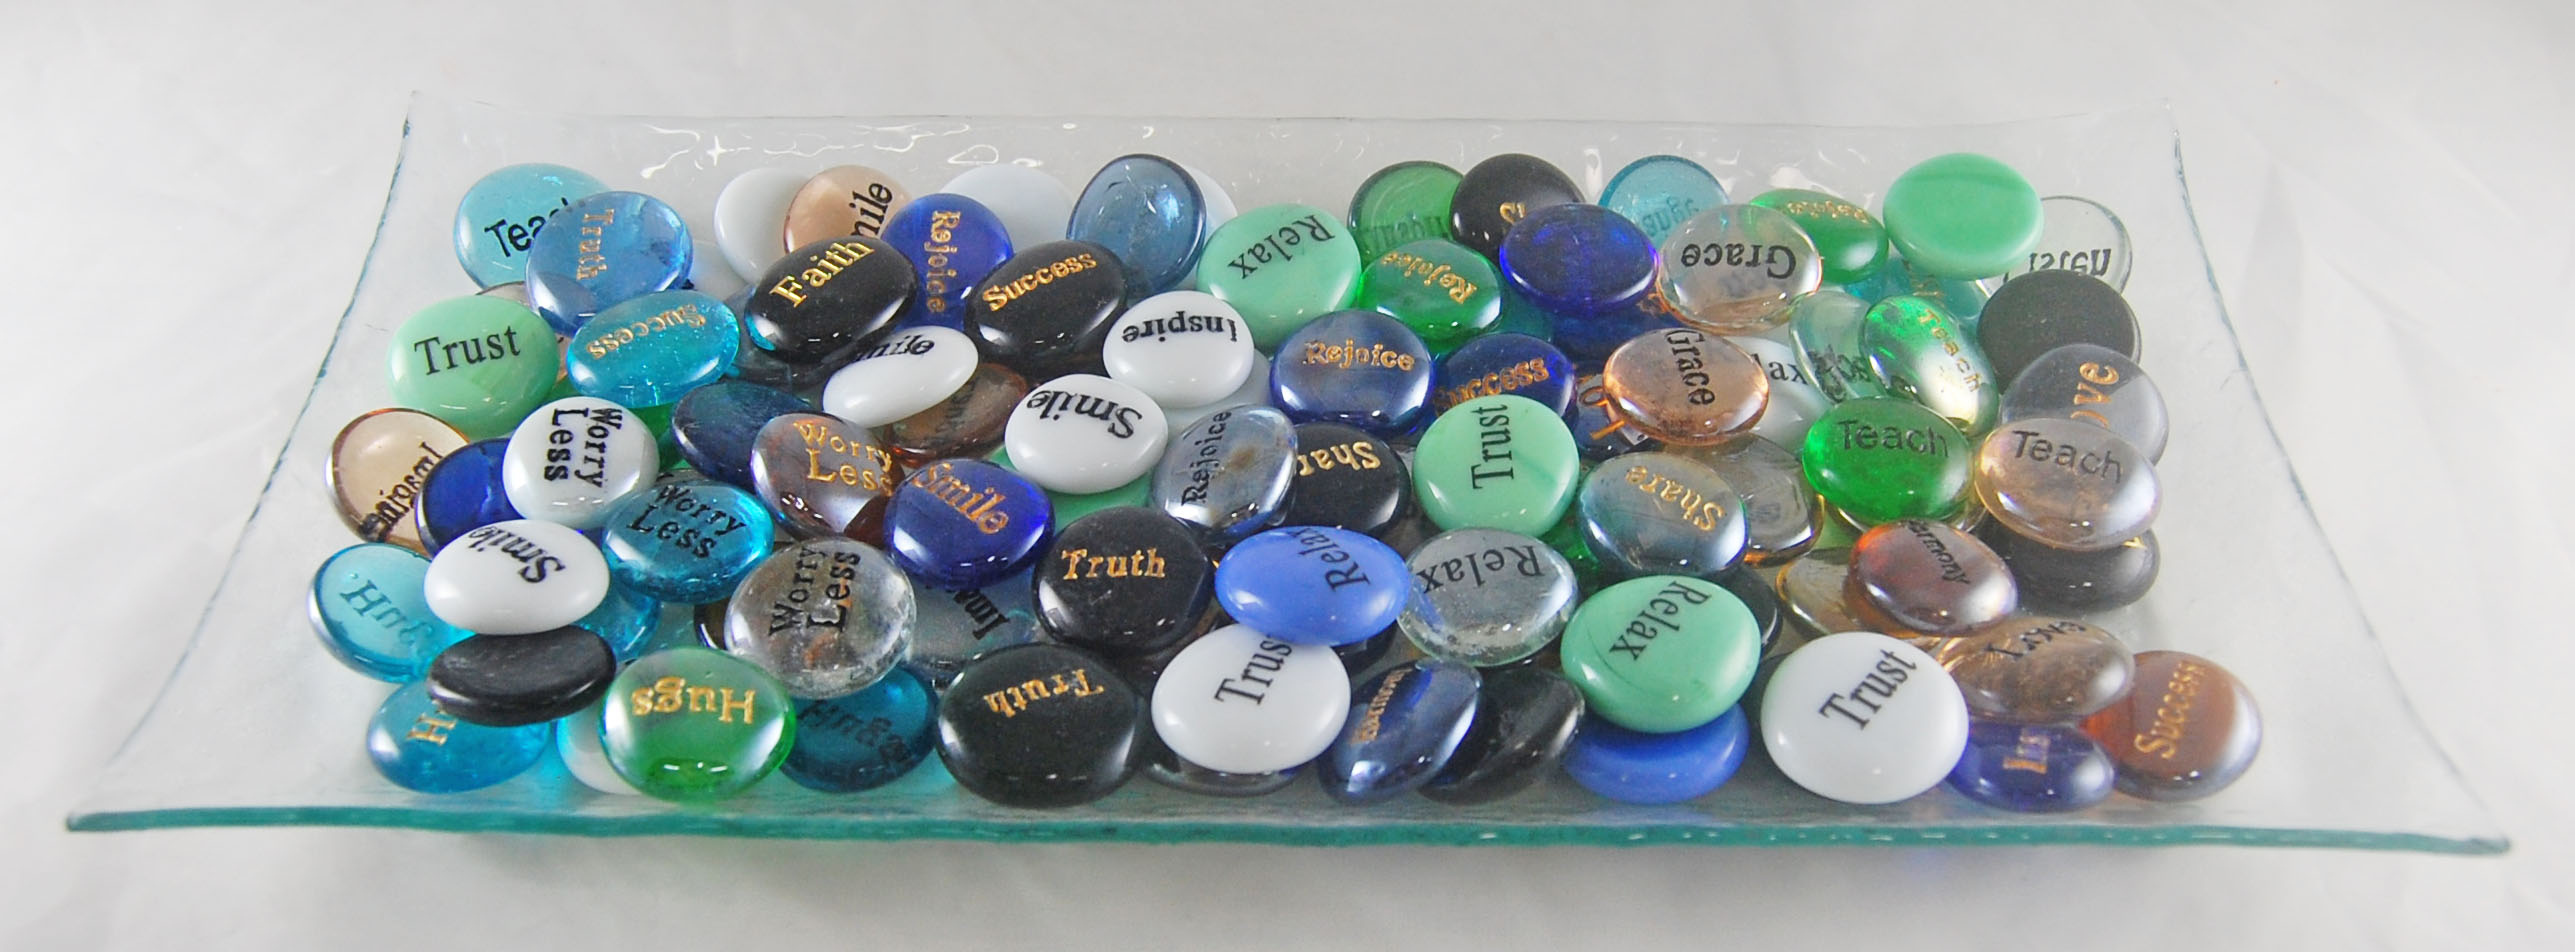 Glass Spirit Stones Engraved - Glass Tray Display - 125 Stones